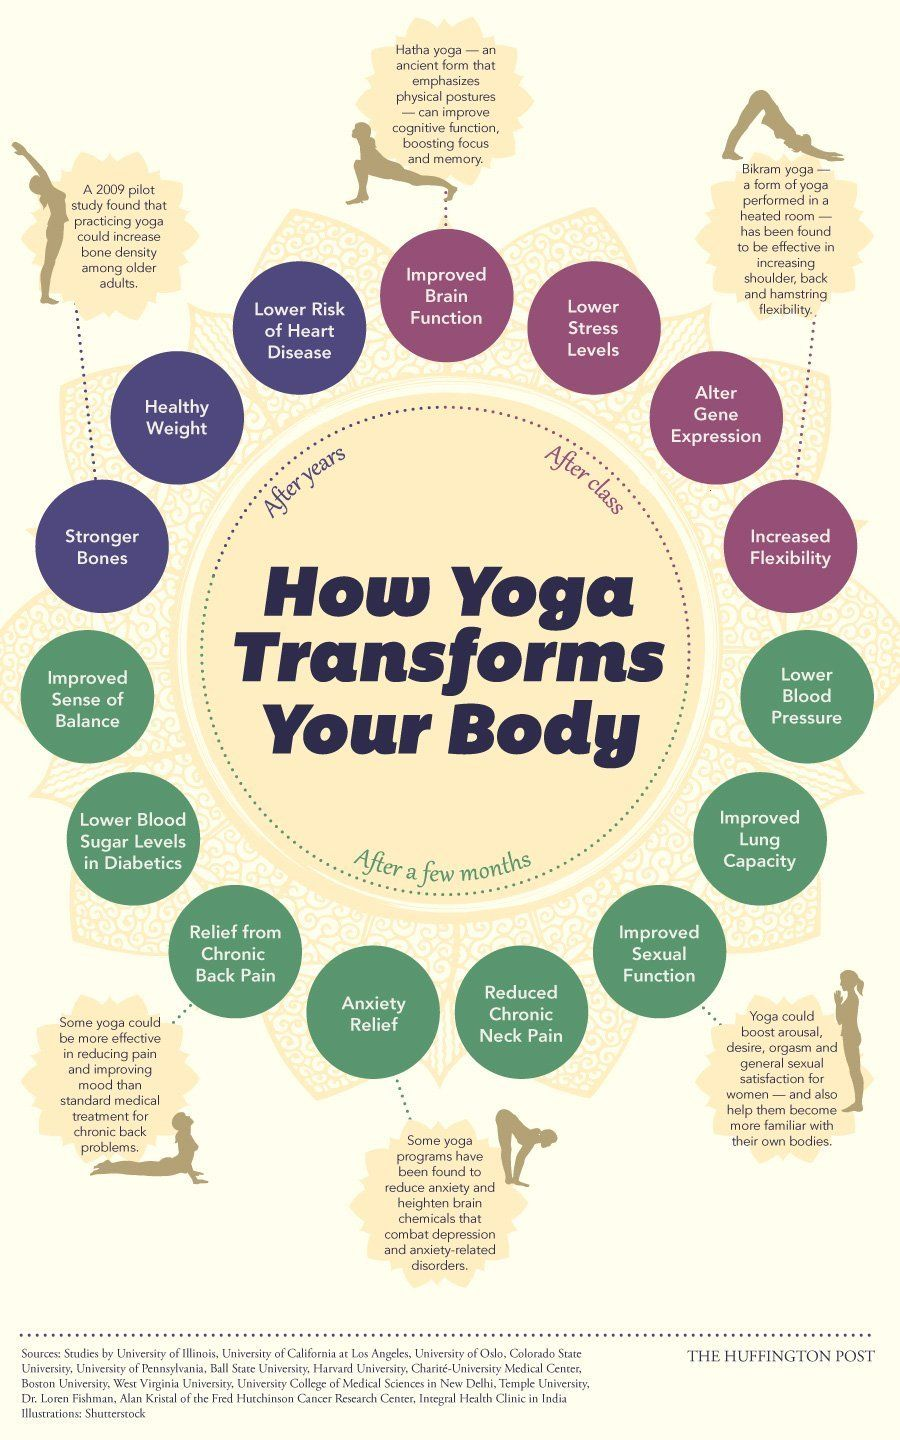 body changes your How yoga